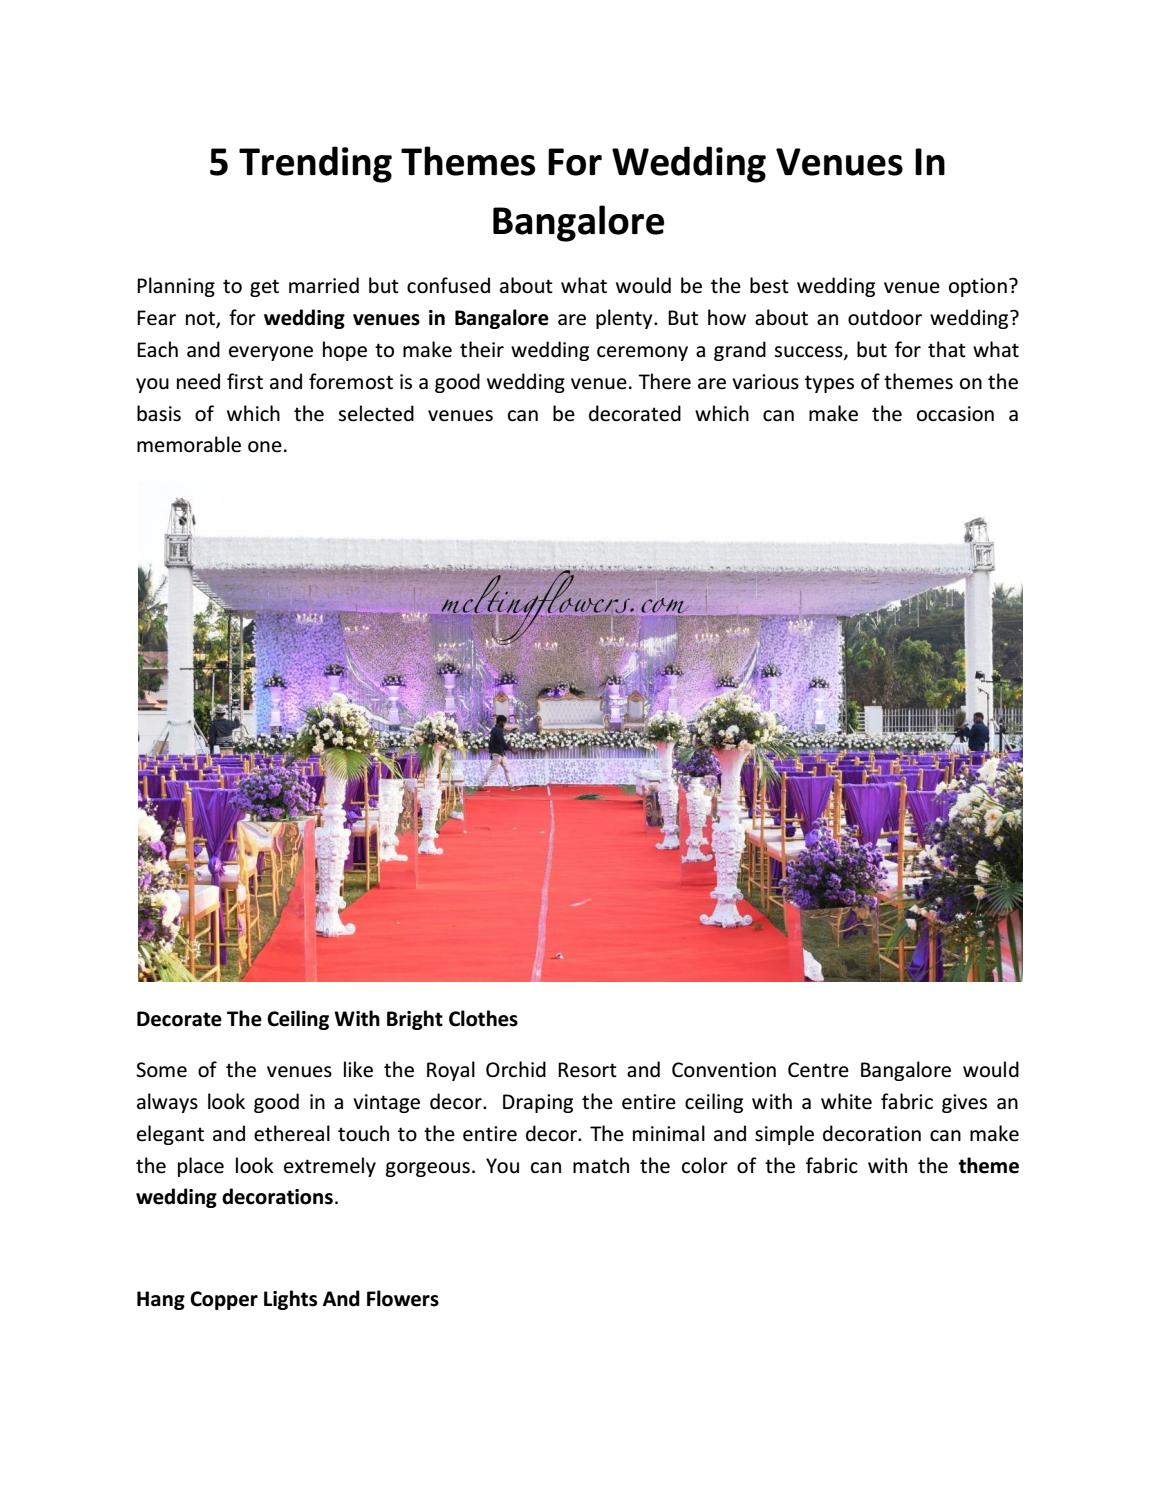 5 Trending Themes For Wedding Venues In Bangalore By Syed Atif Issuu